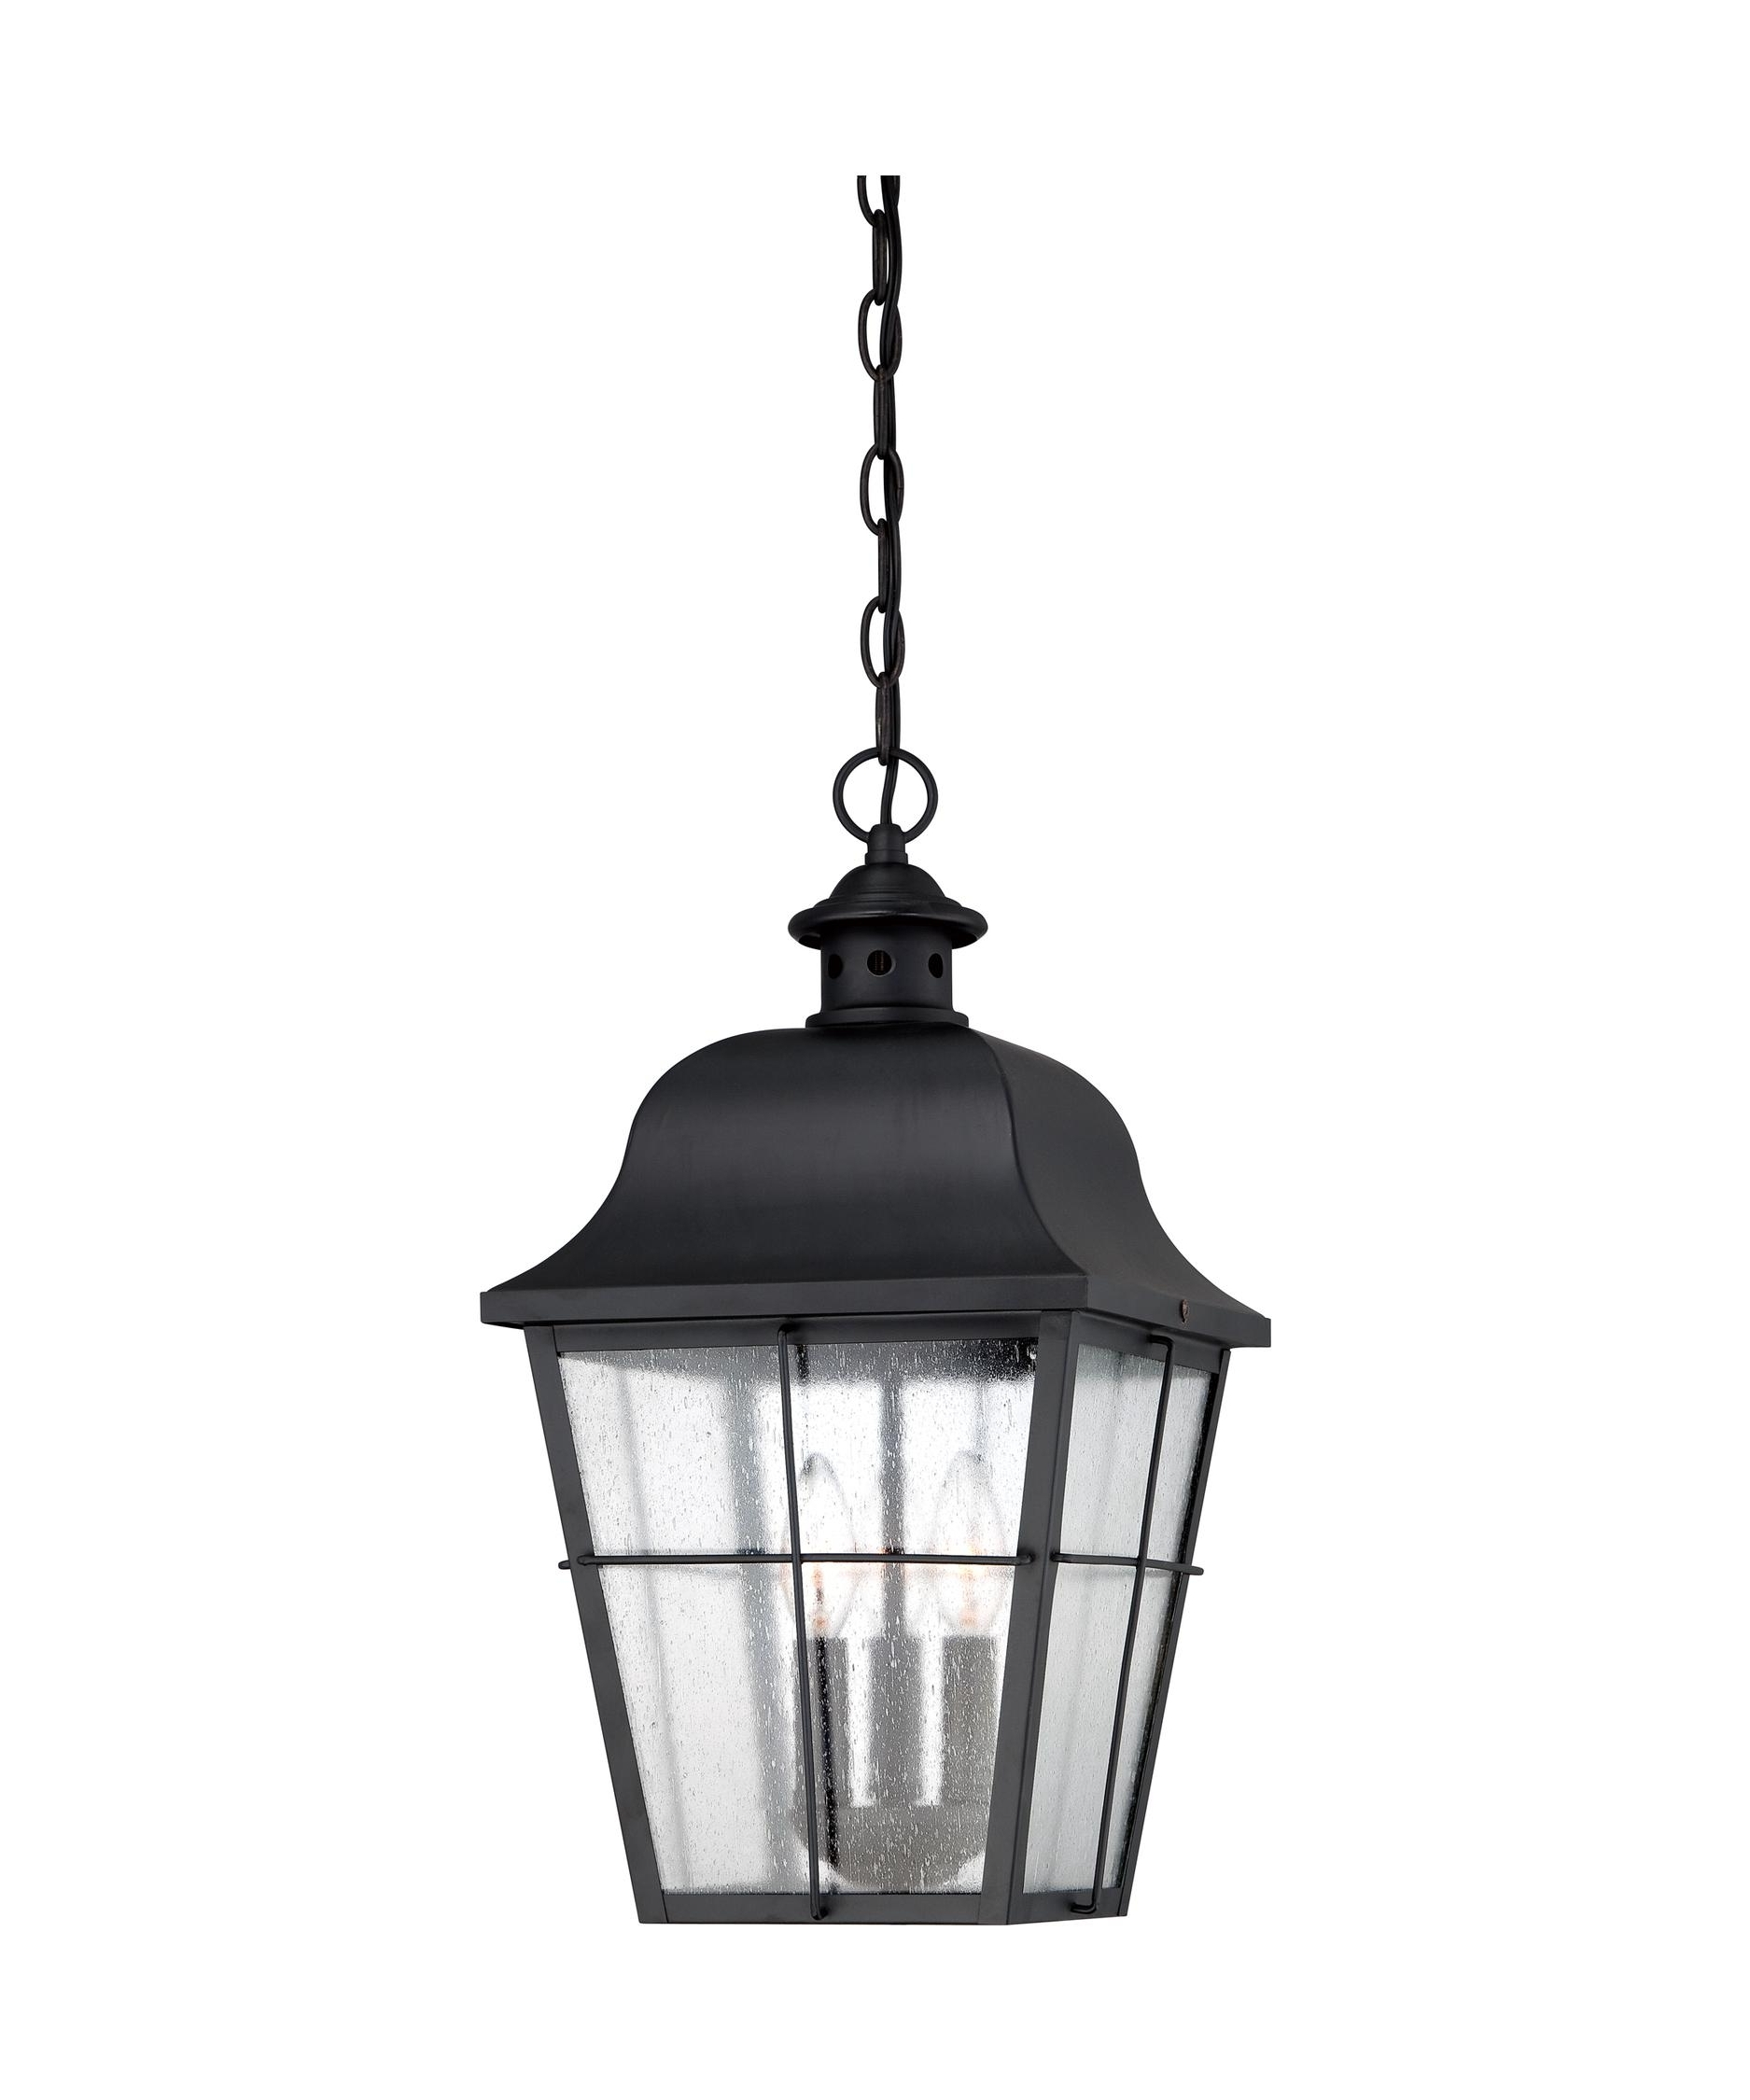 Quoizel Outdoor Hanging Lights With Regard To Well Liked Quoizel Mhe1910 Millhouse 10 Inch Wide 3 Light Outdoor Hanging (View 11 of 20)